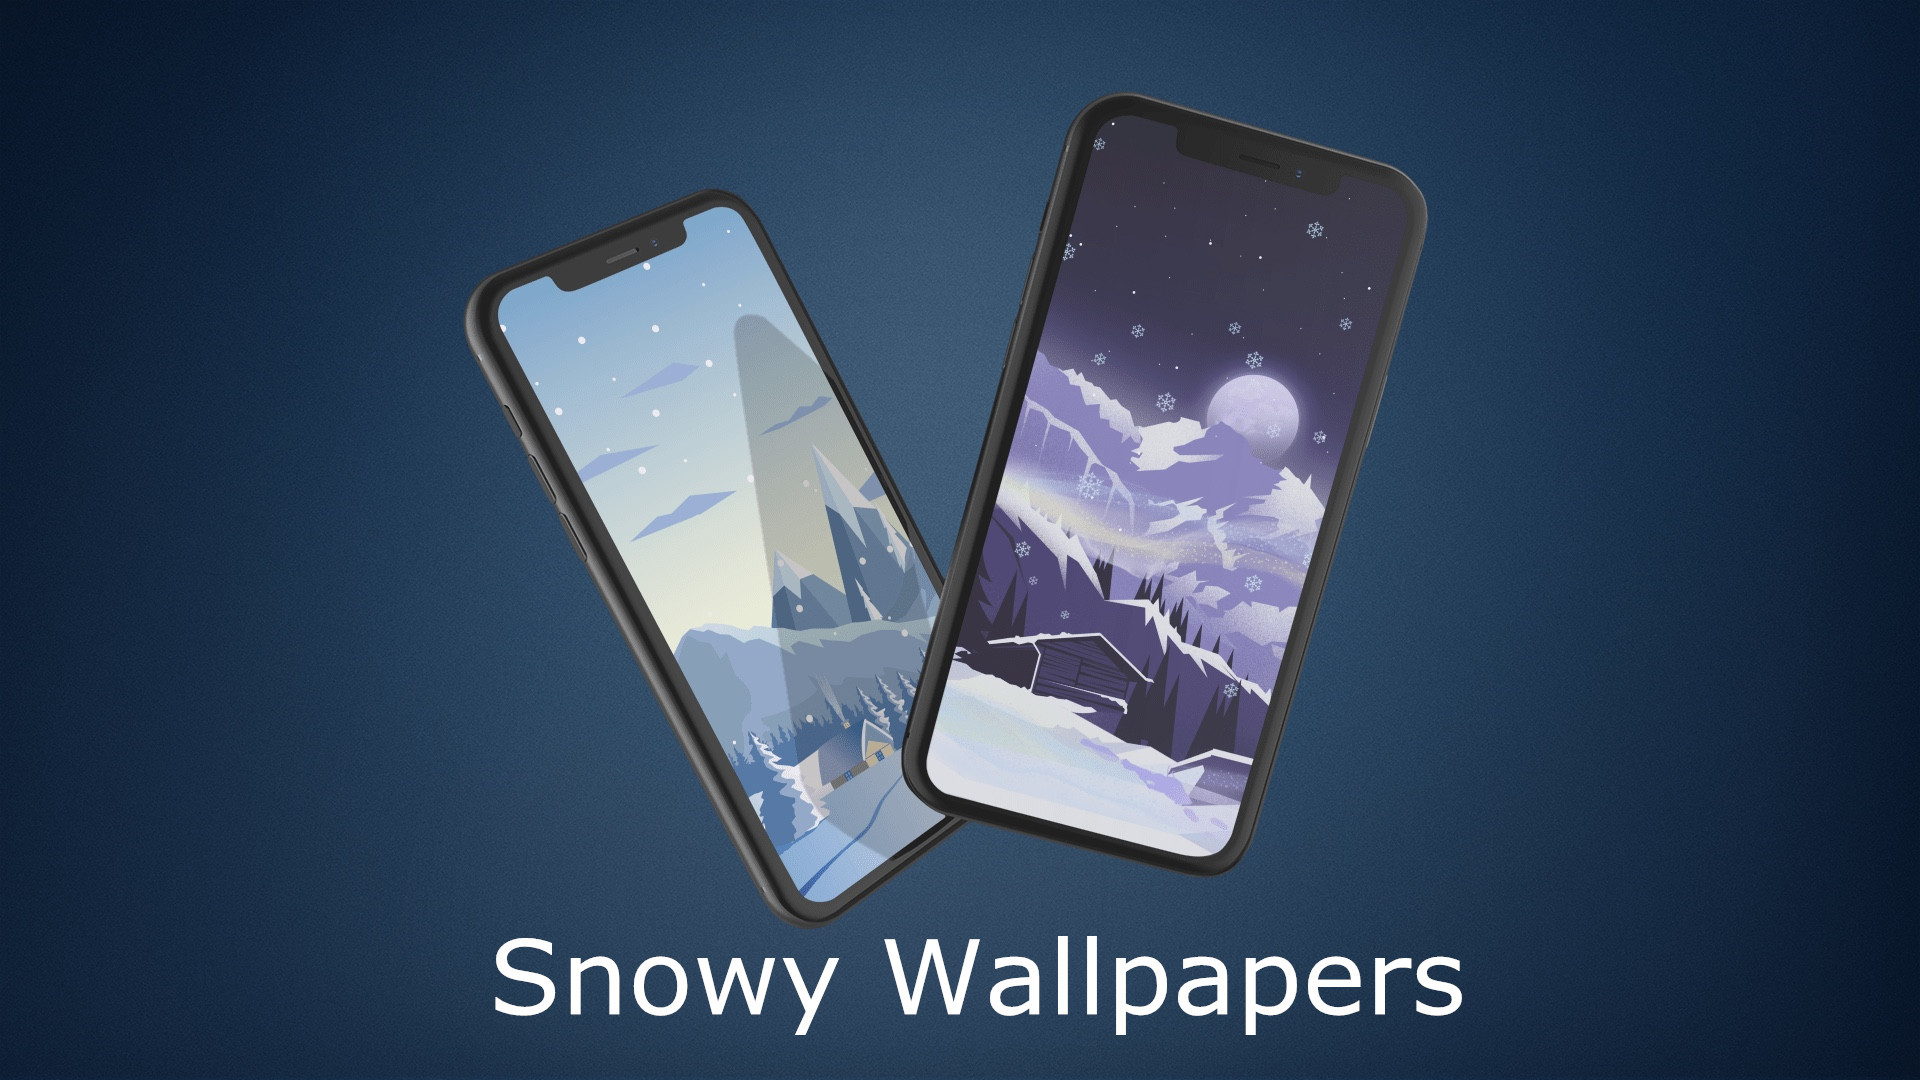 Res: 1920x1080, Snowy Wallpaper Illustrations for iPhone